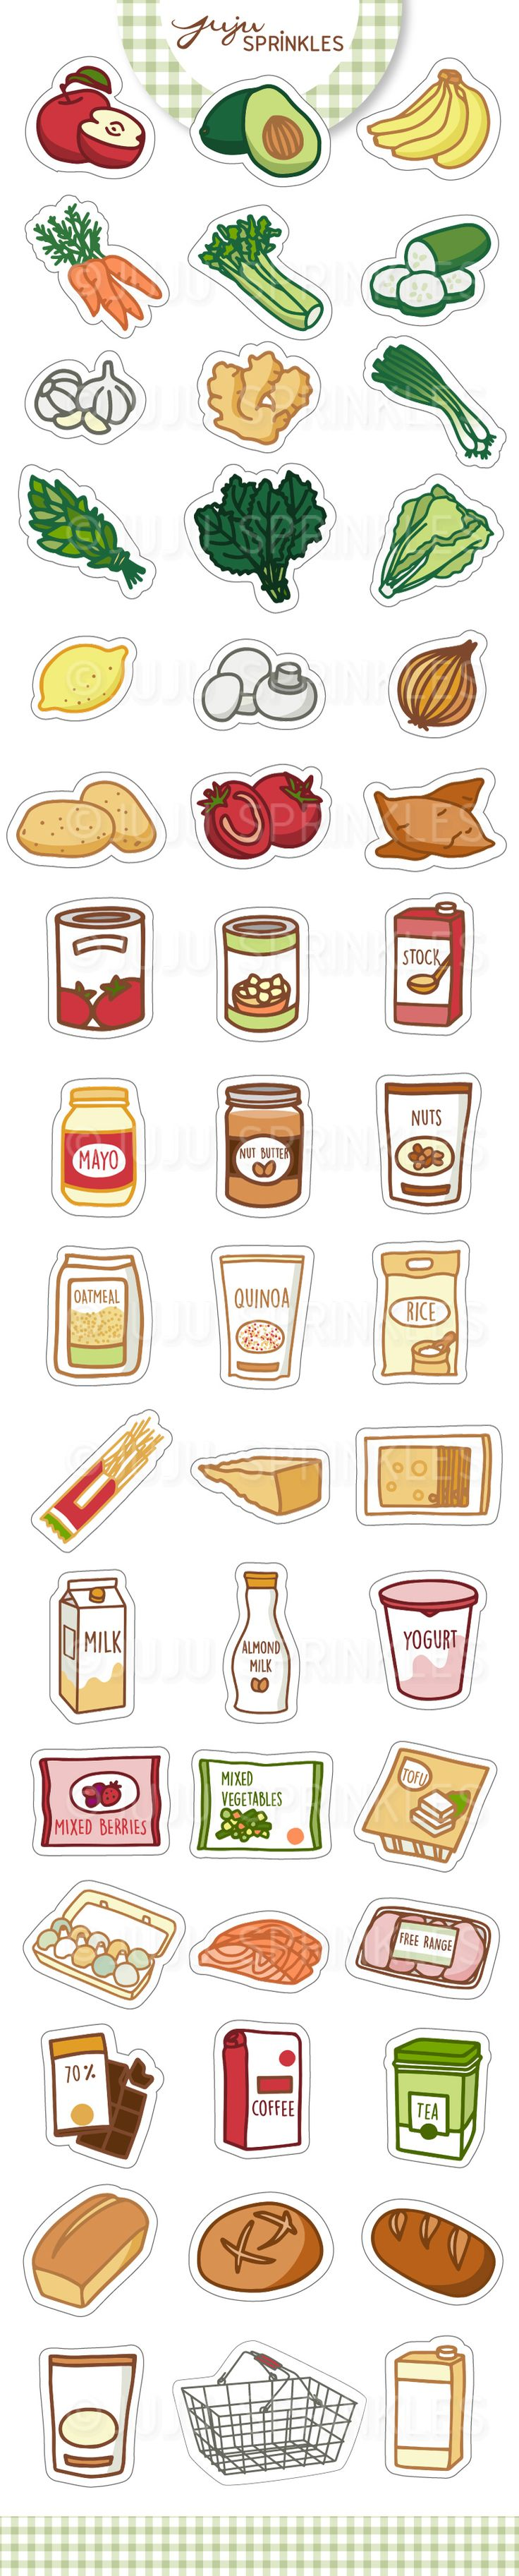 Grocery Shopping Clipart / Stickers / Illustrations  Juju Sprinkles https://www.etsy.com/listing/538825566/grocery-clipart-vegetable-clipart-food?ref=shop_home_active_2